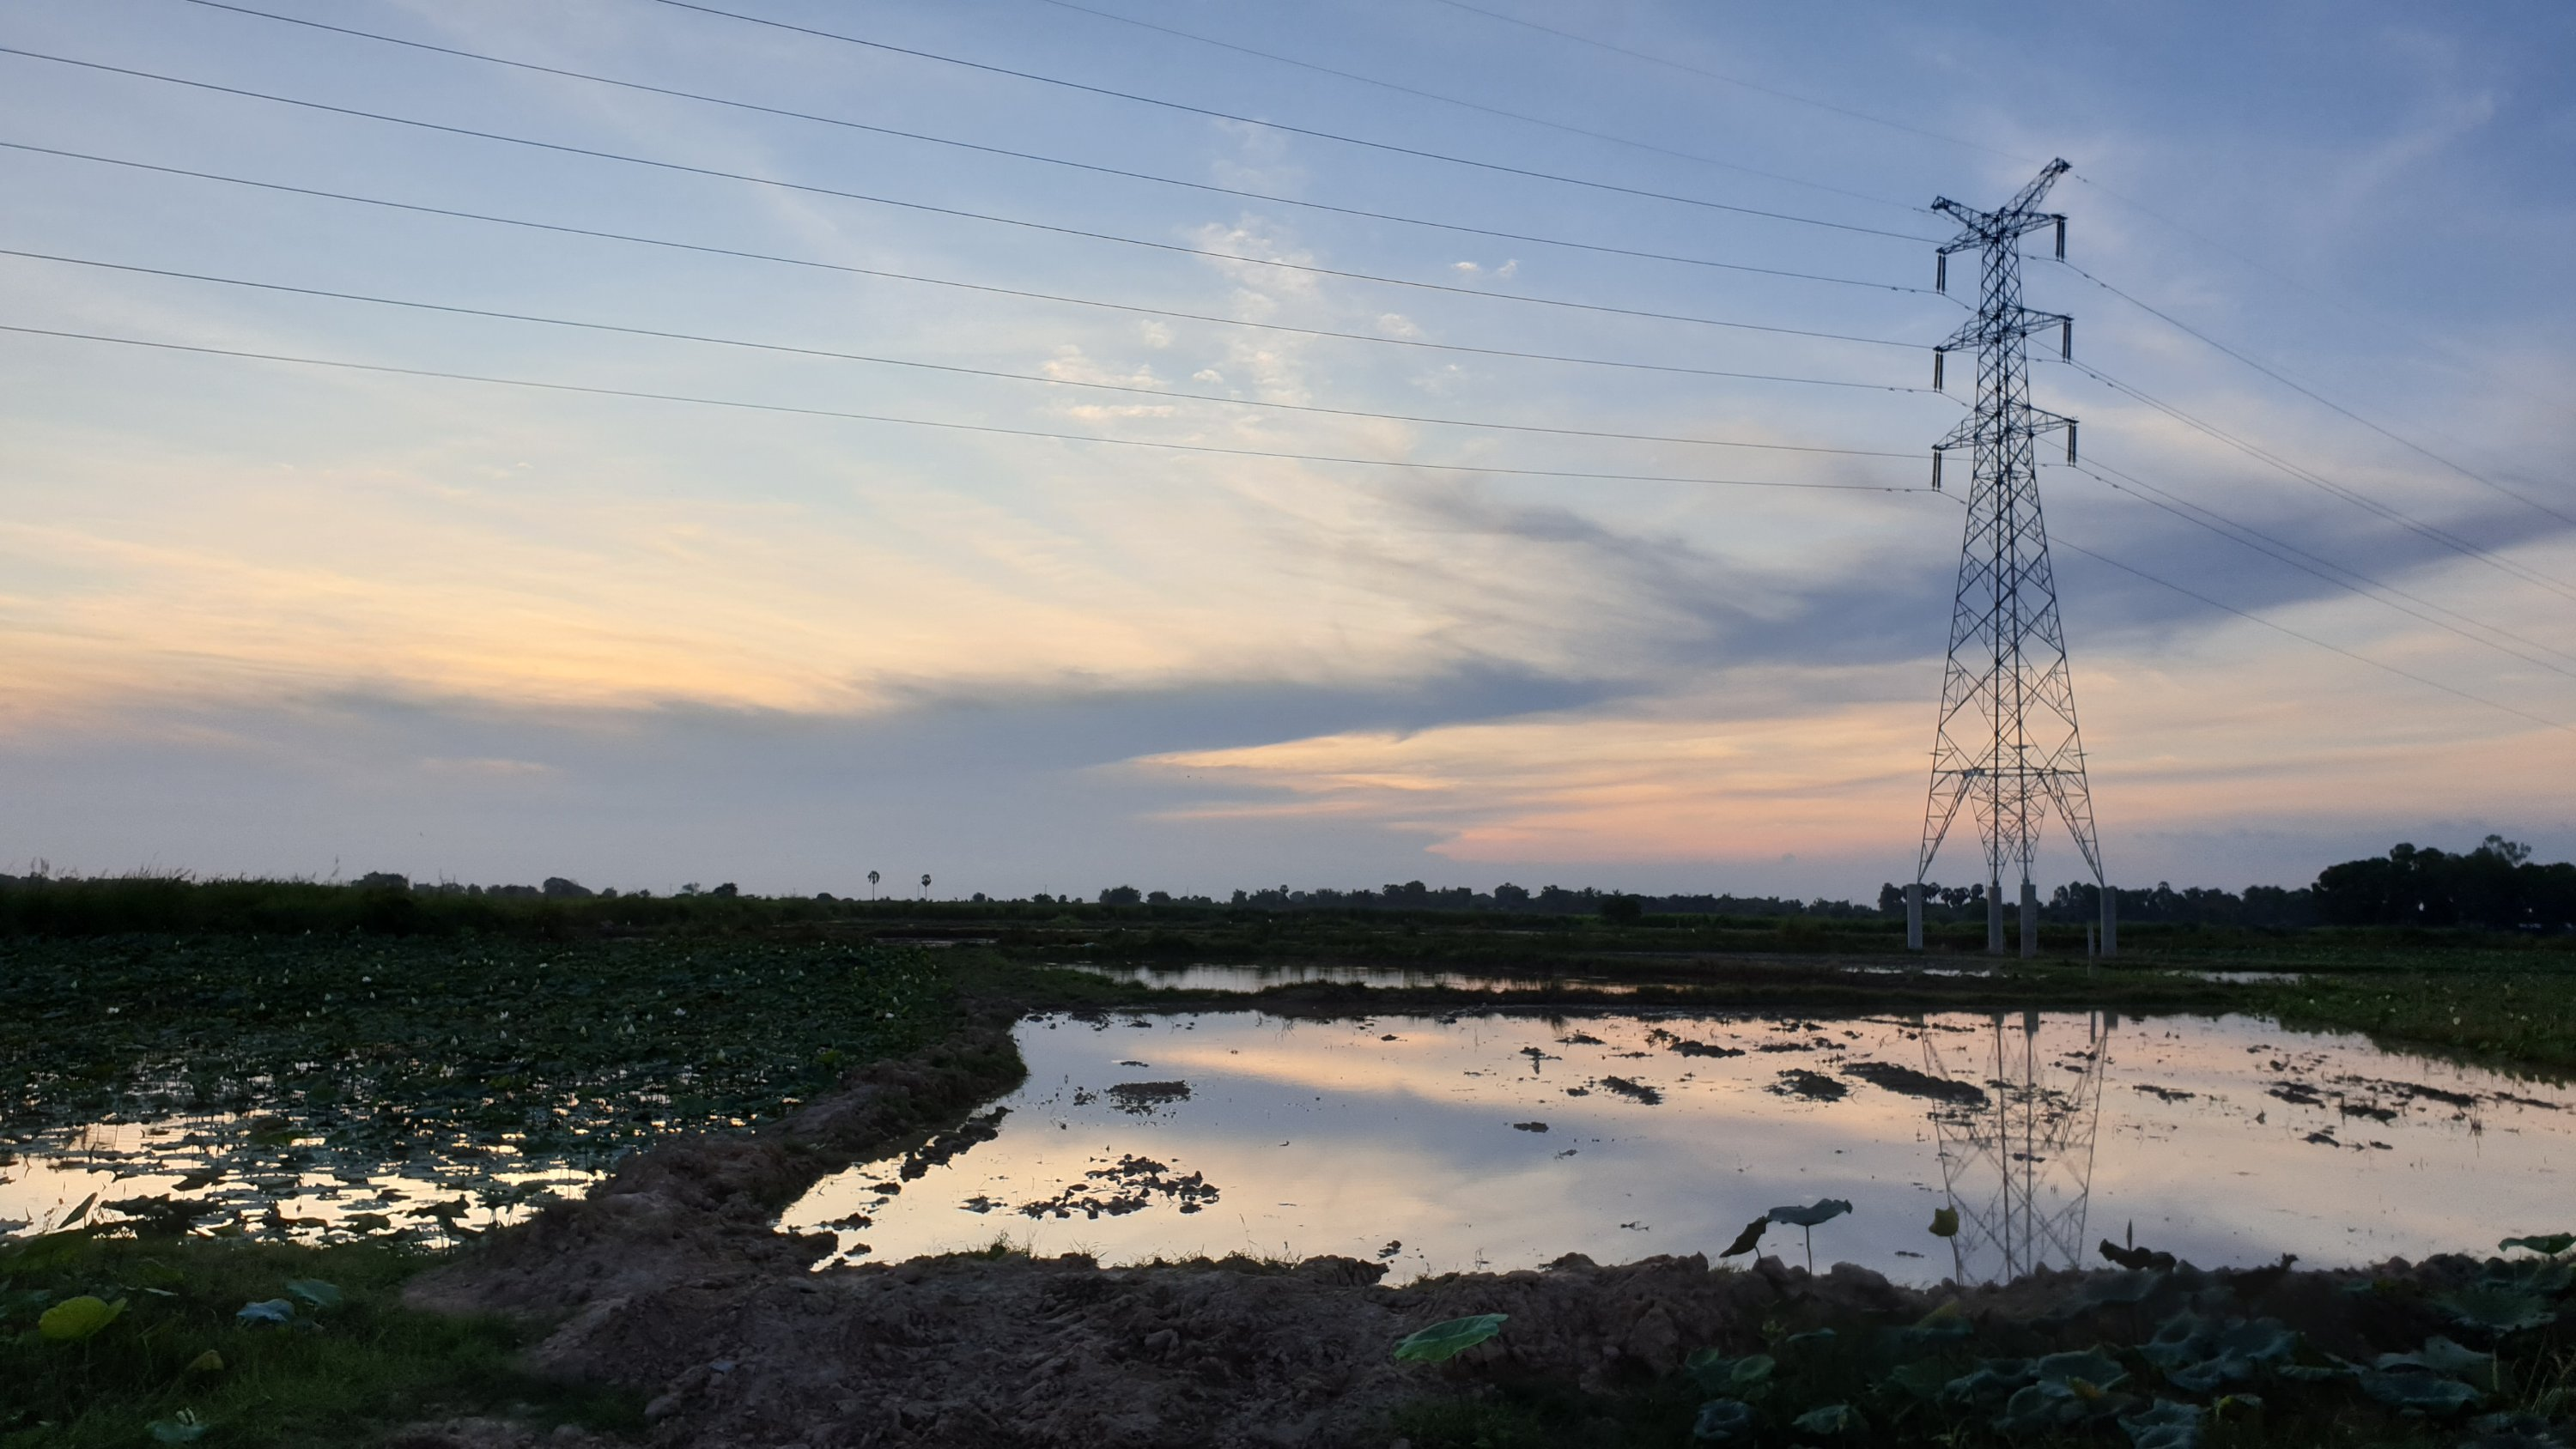 Sunset with electricity pylon in the foreground, Cambodia